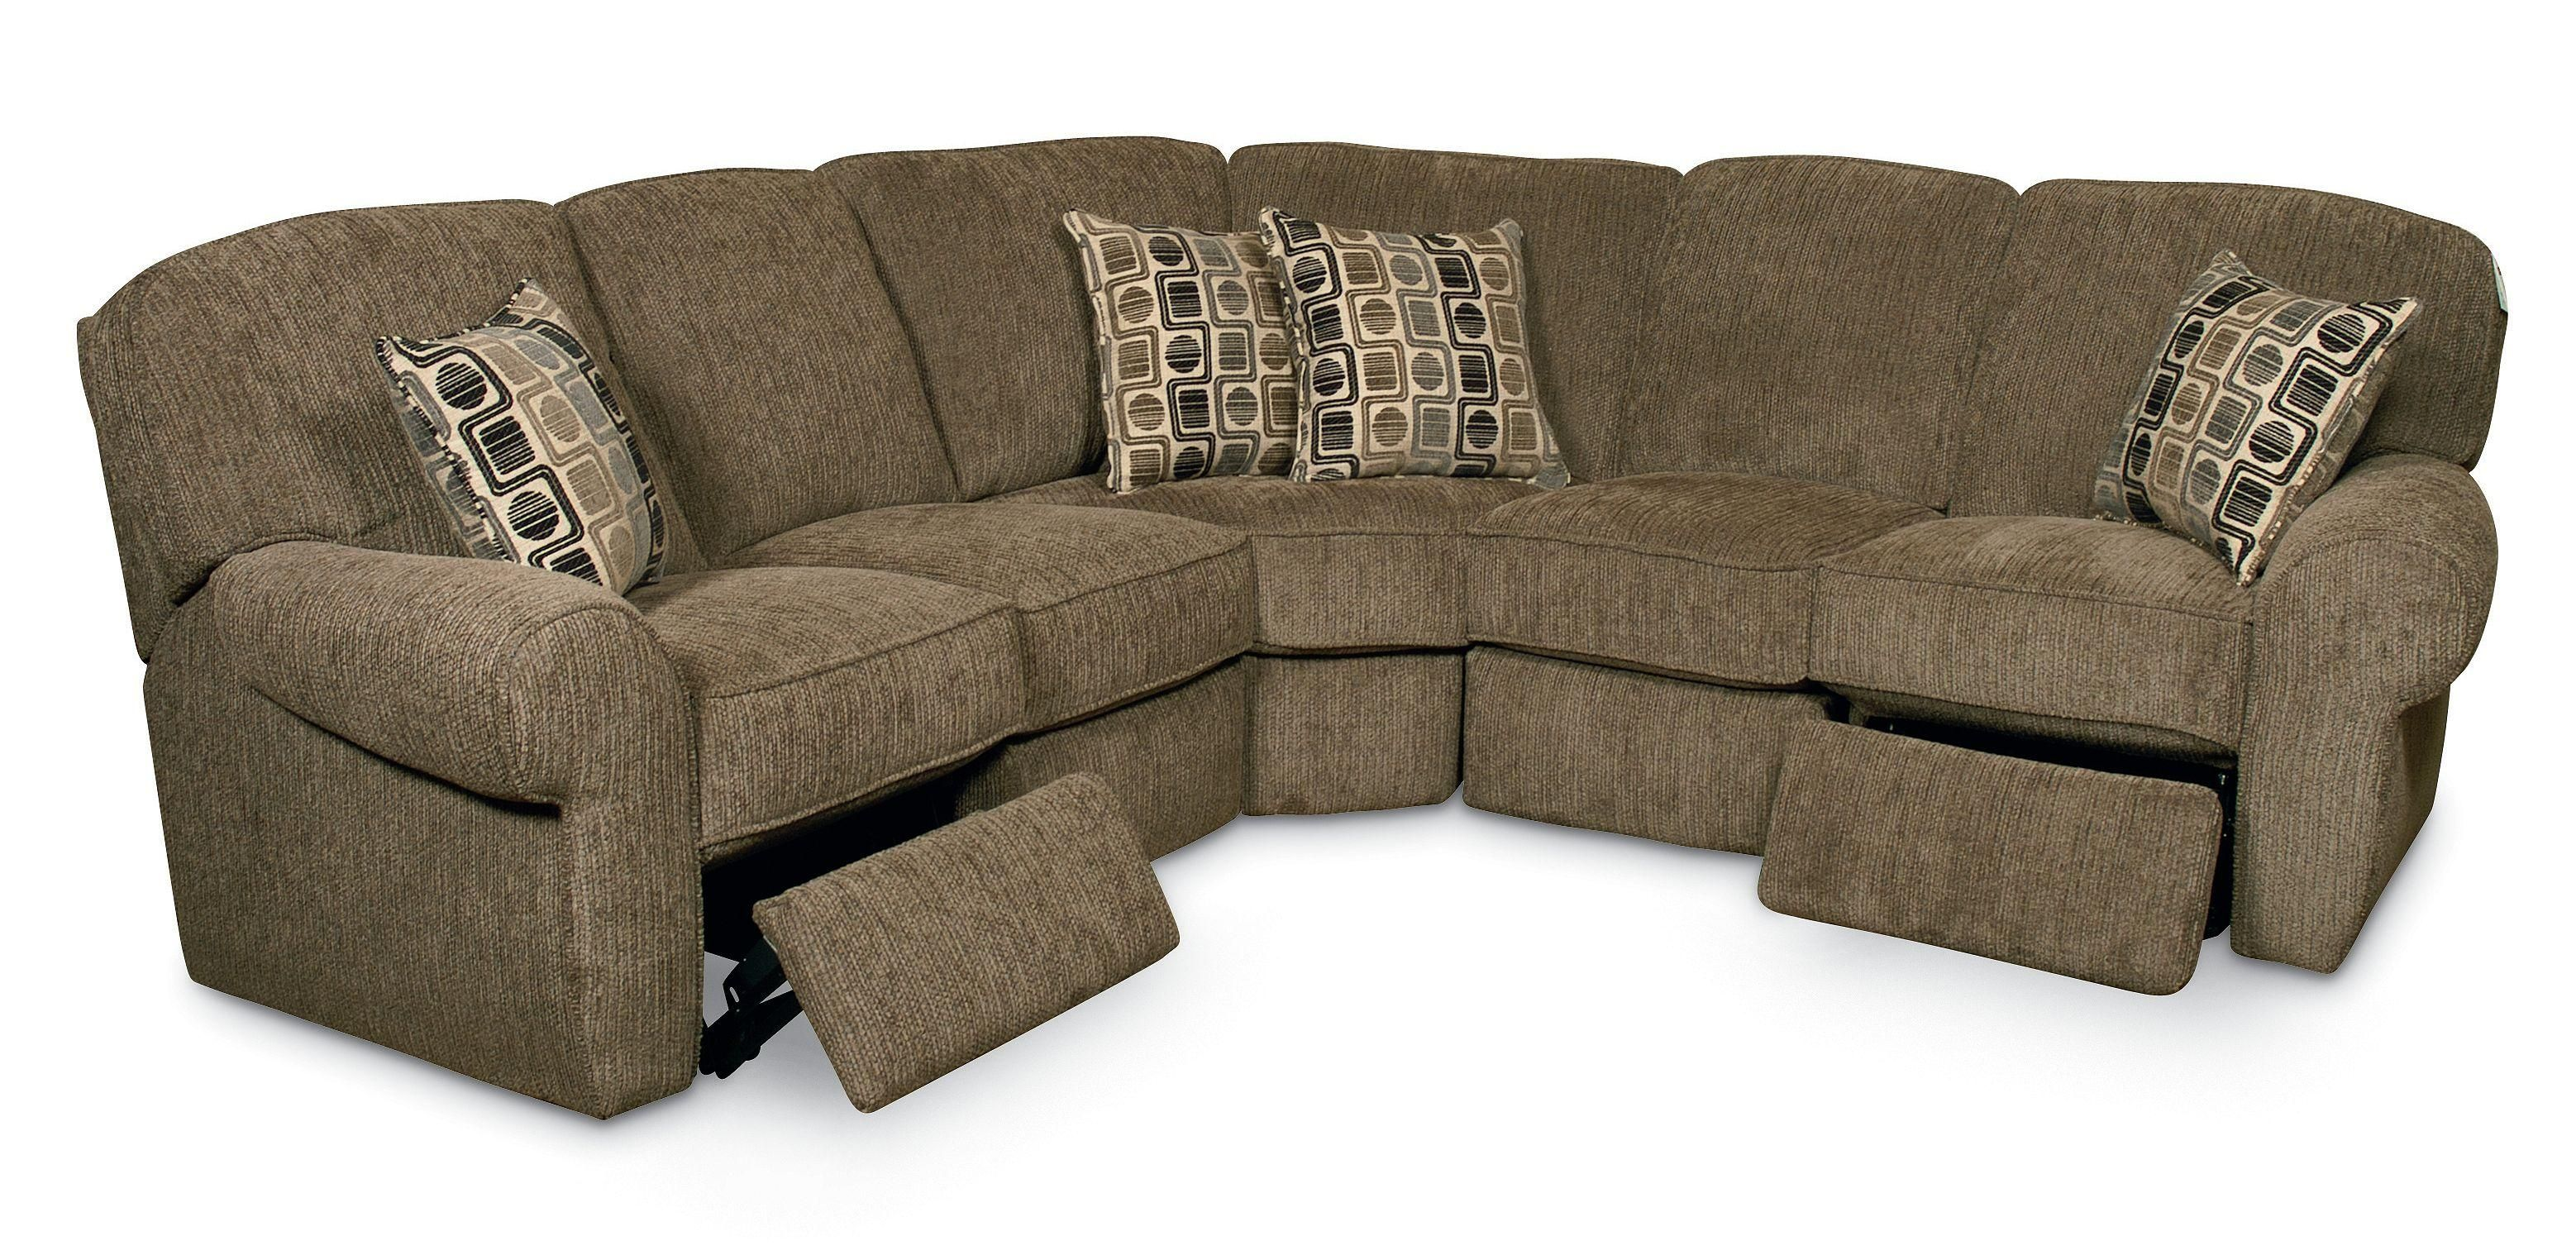 4 piece recliner sectional sofa best leather sofas reviews lane furniture megan collection features